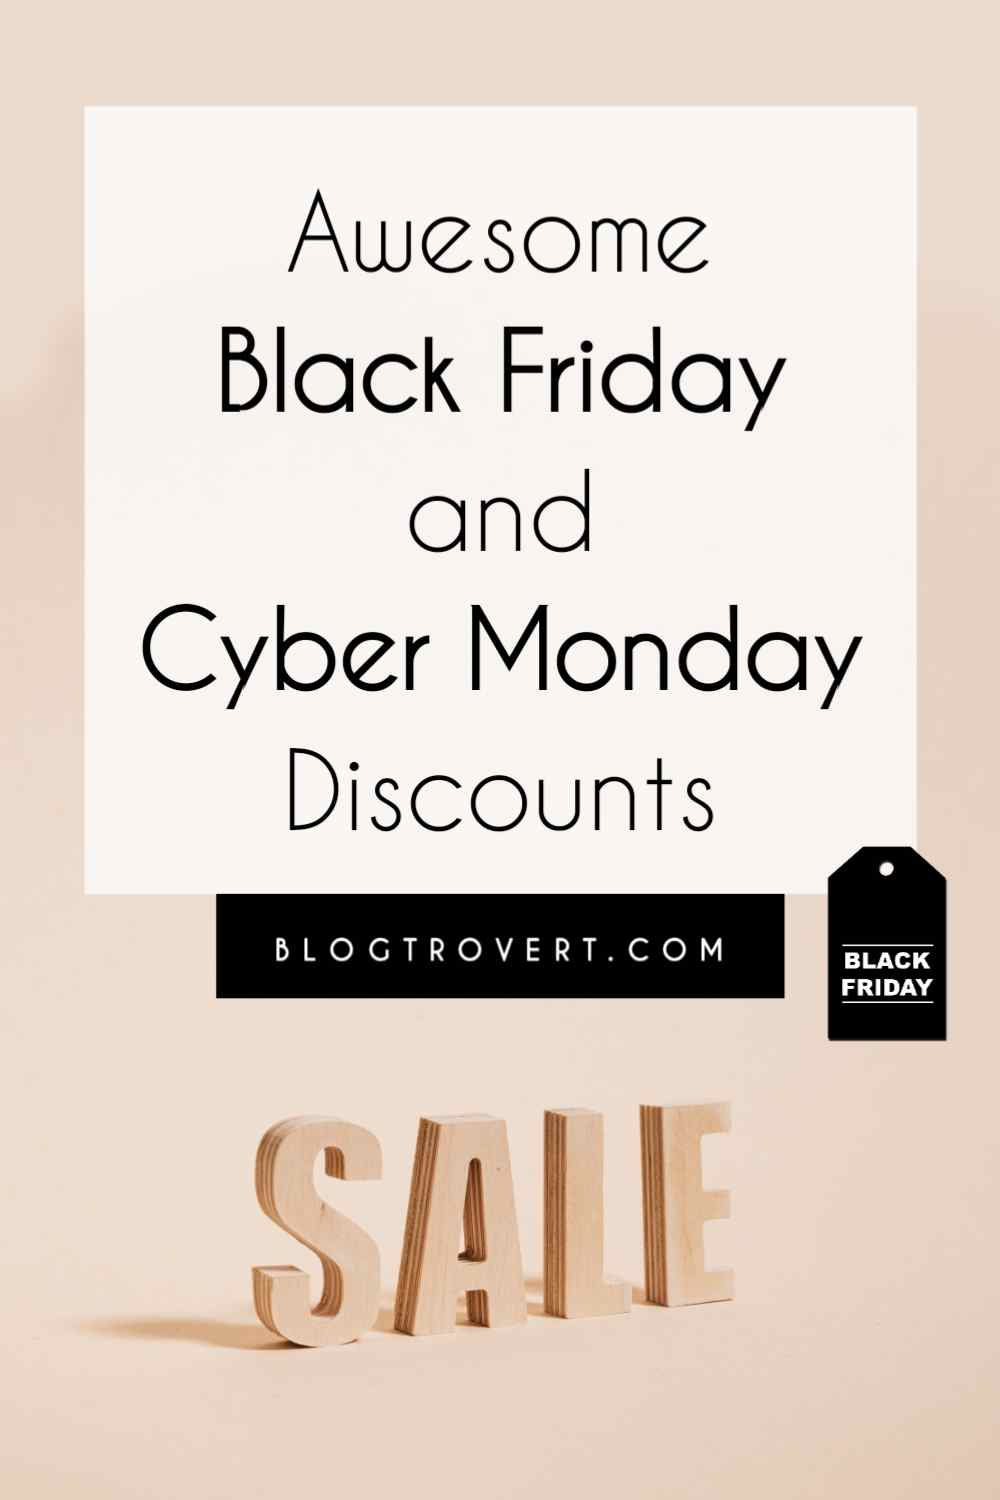 Black Friday and Cyber Monday Sales